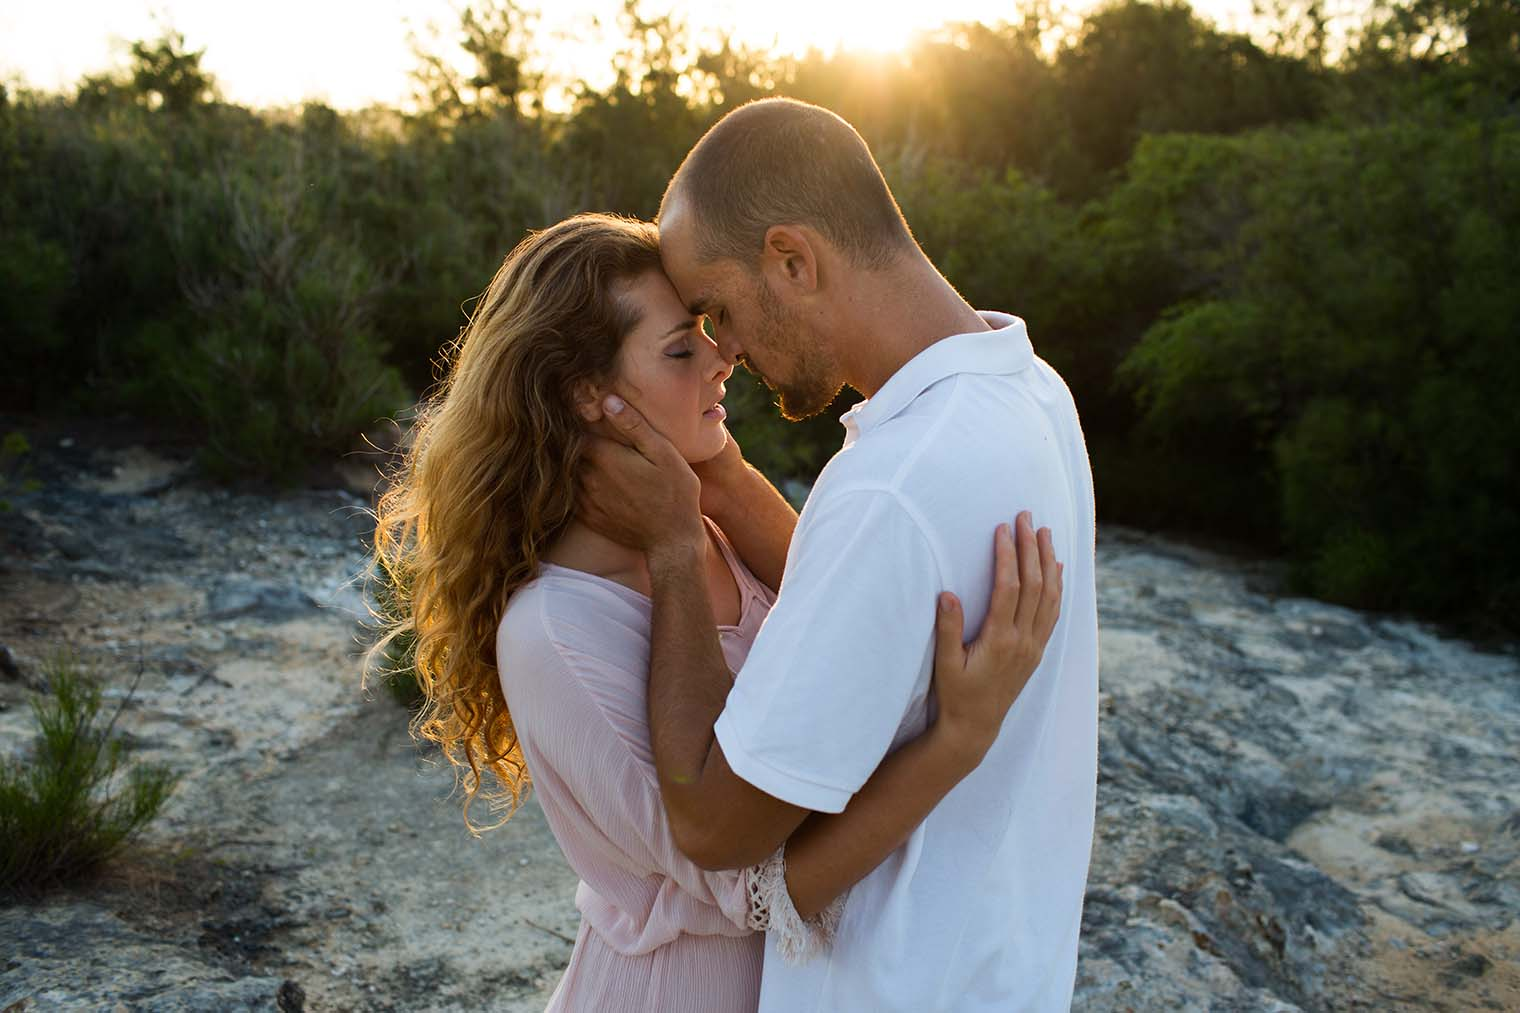 Sunset engagement photos at Maha'ulepu Trailhead